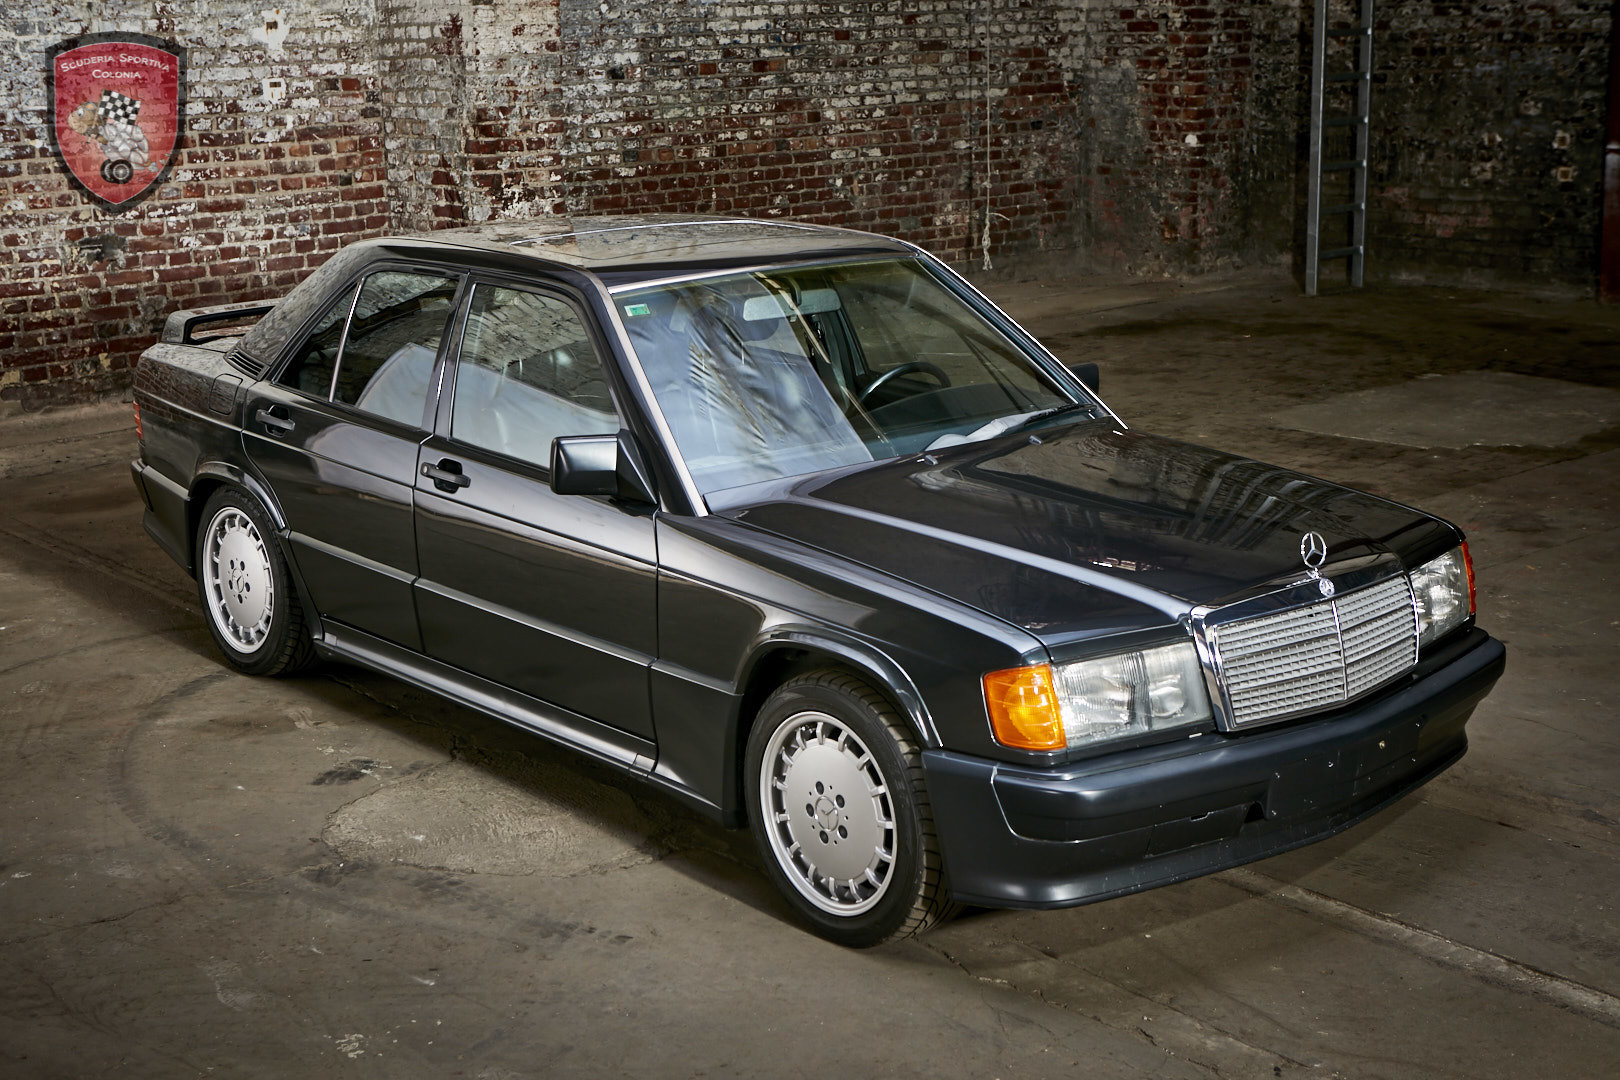 1990 Mercedes Benz 190 E  2.5   16 V For Sale (picture 4 of 12)